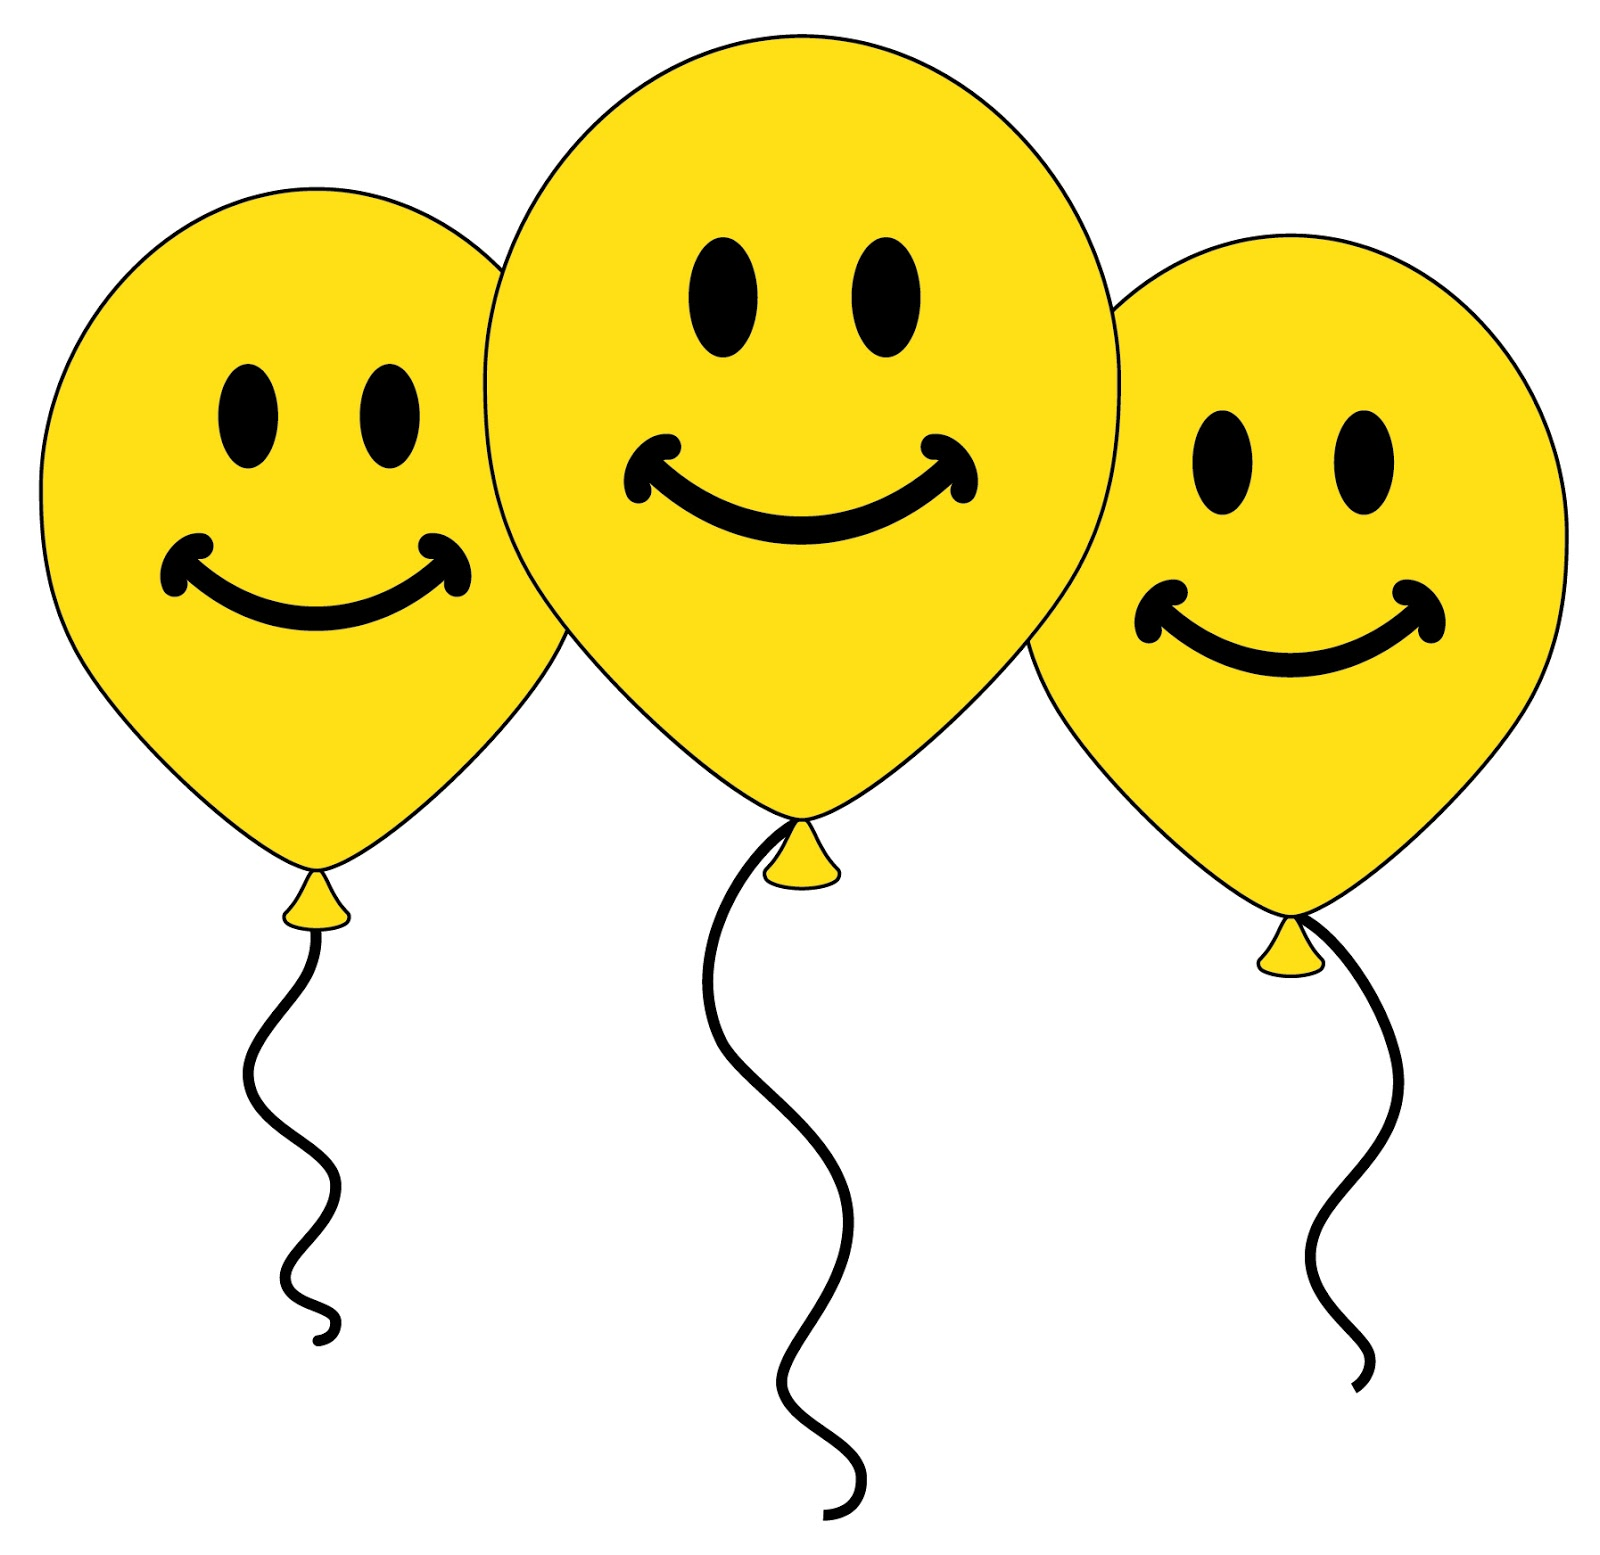 Happy face smiley face border free download clip art on